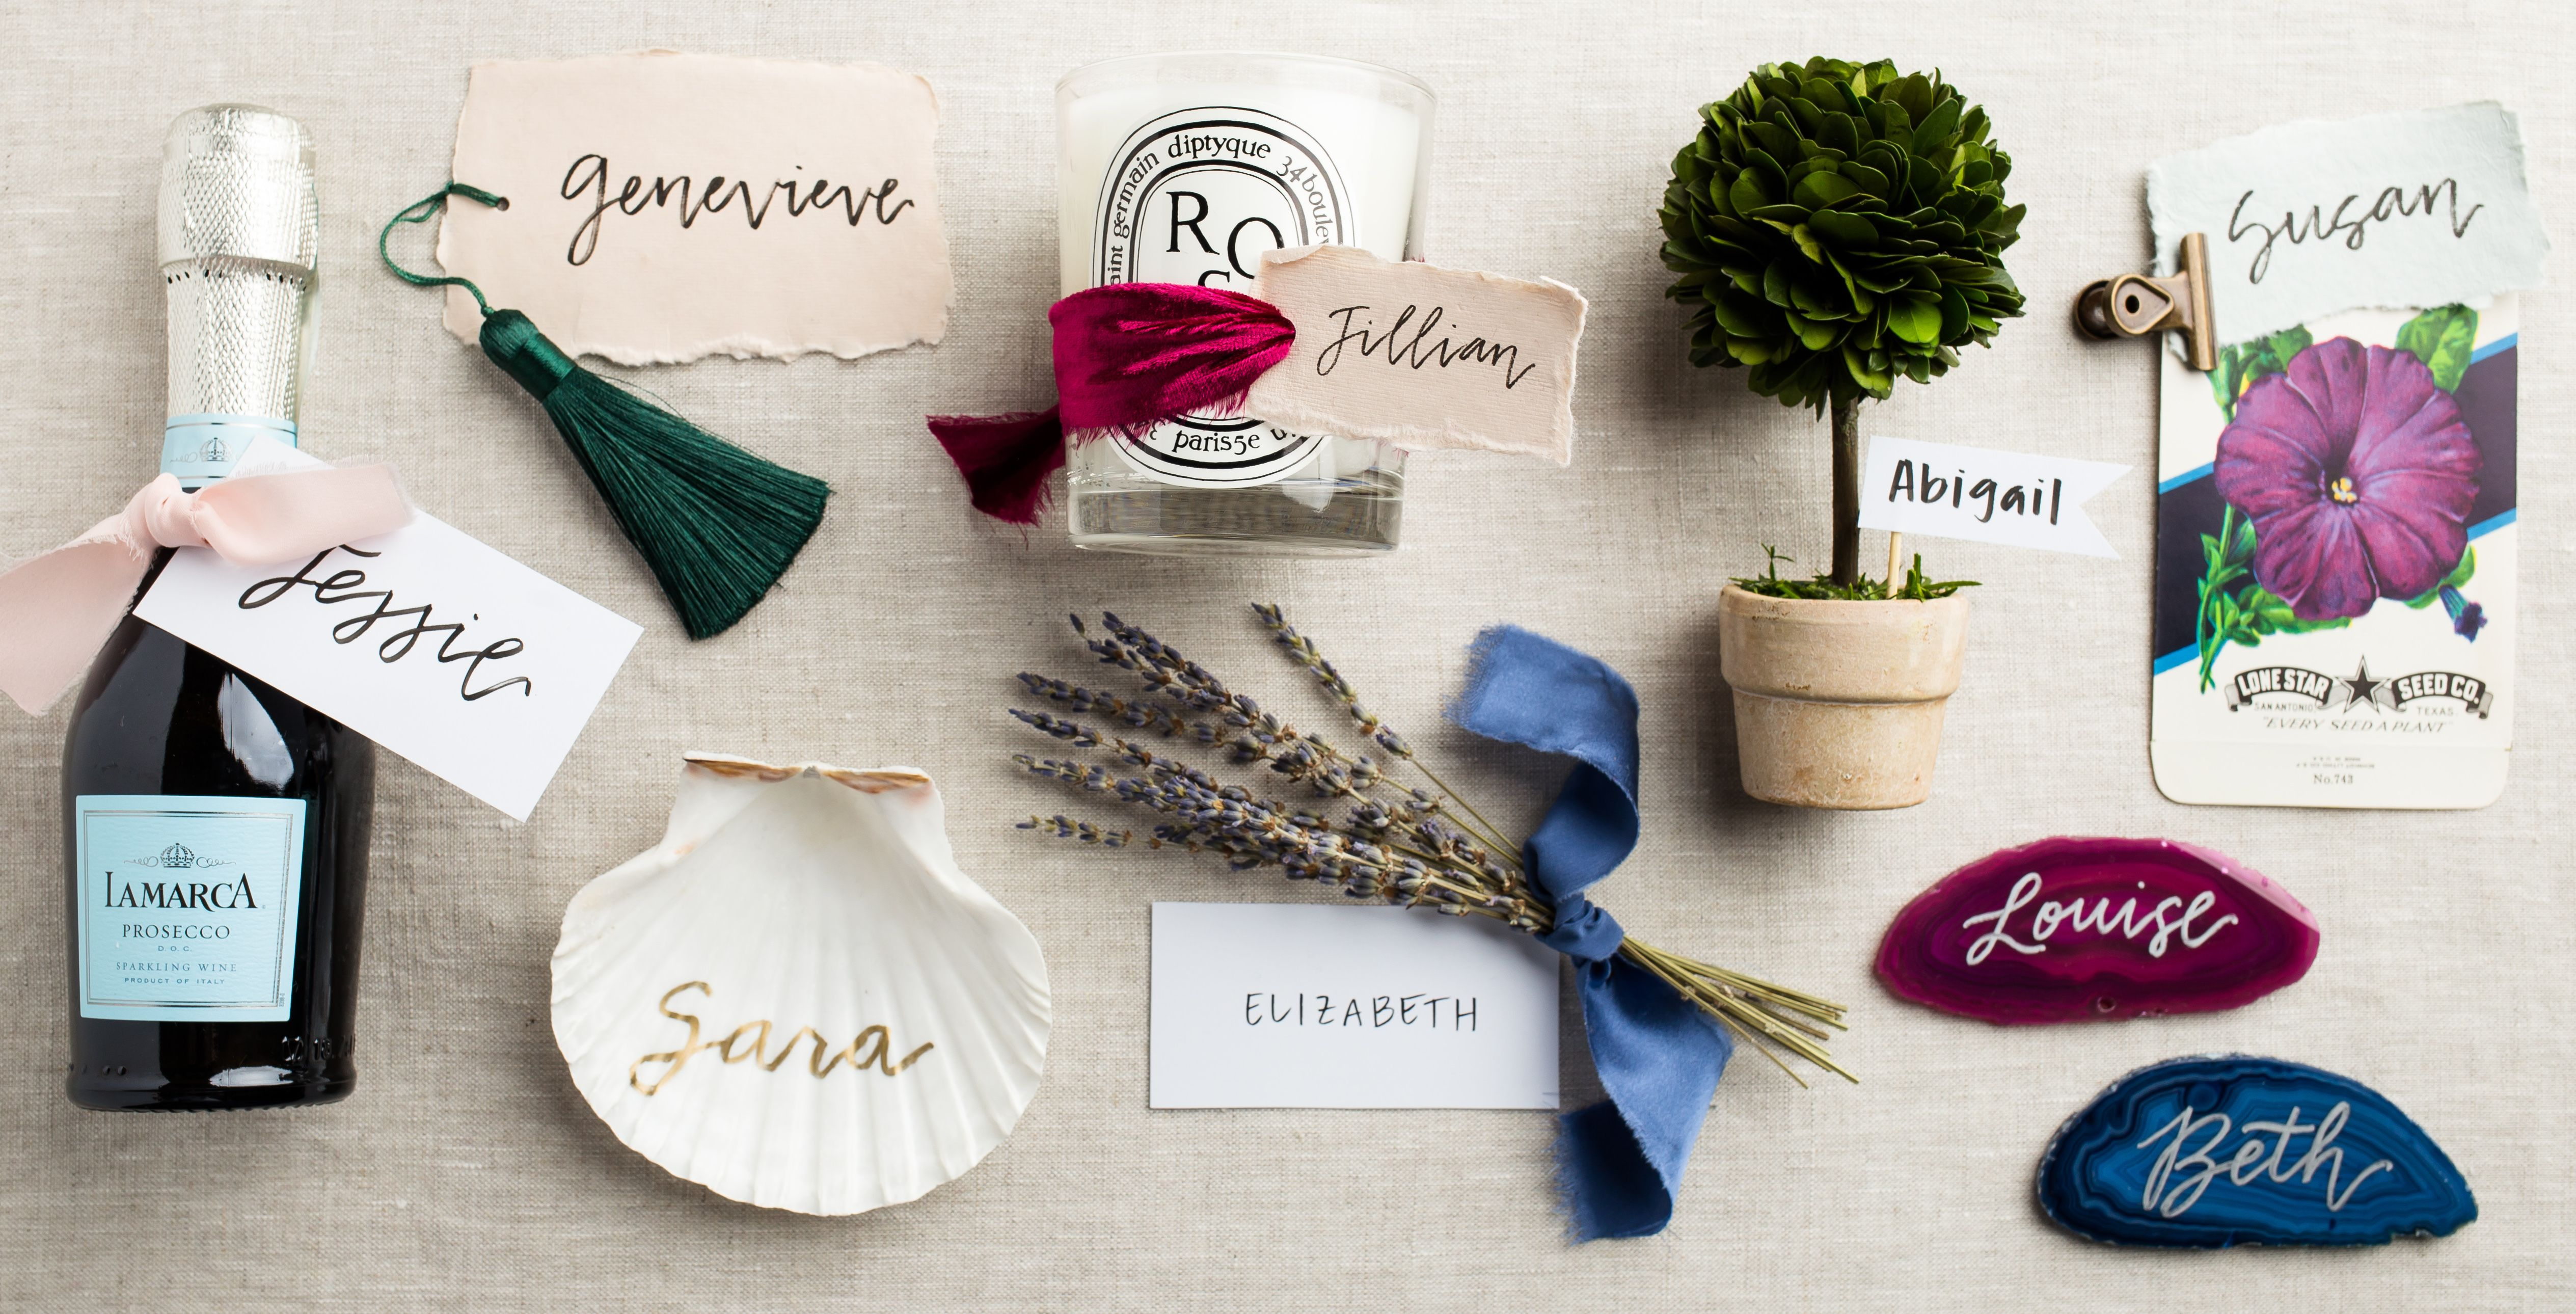 10 Unique Place Card Ideas That Are Perfect for Any Occasion